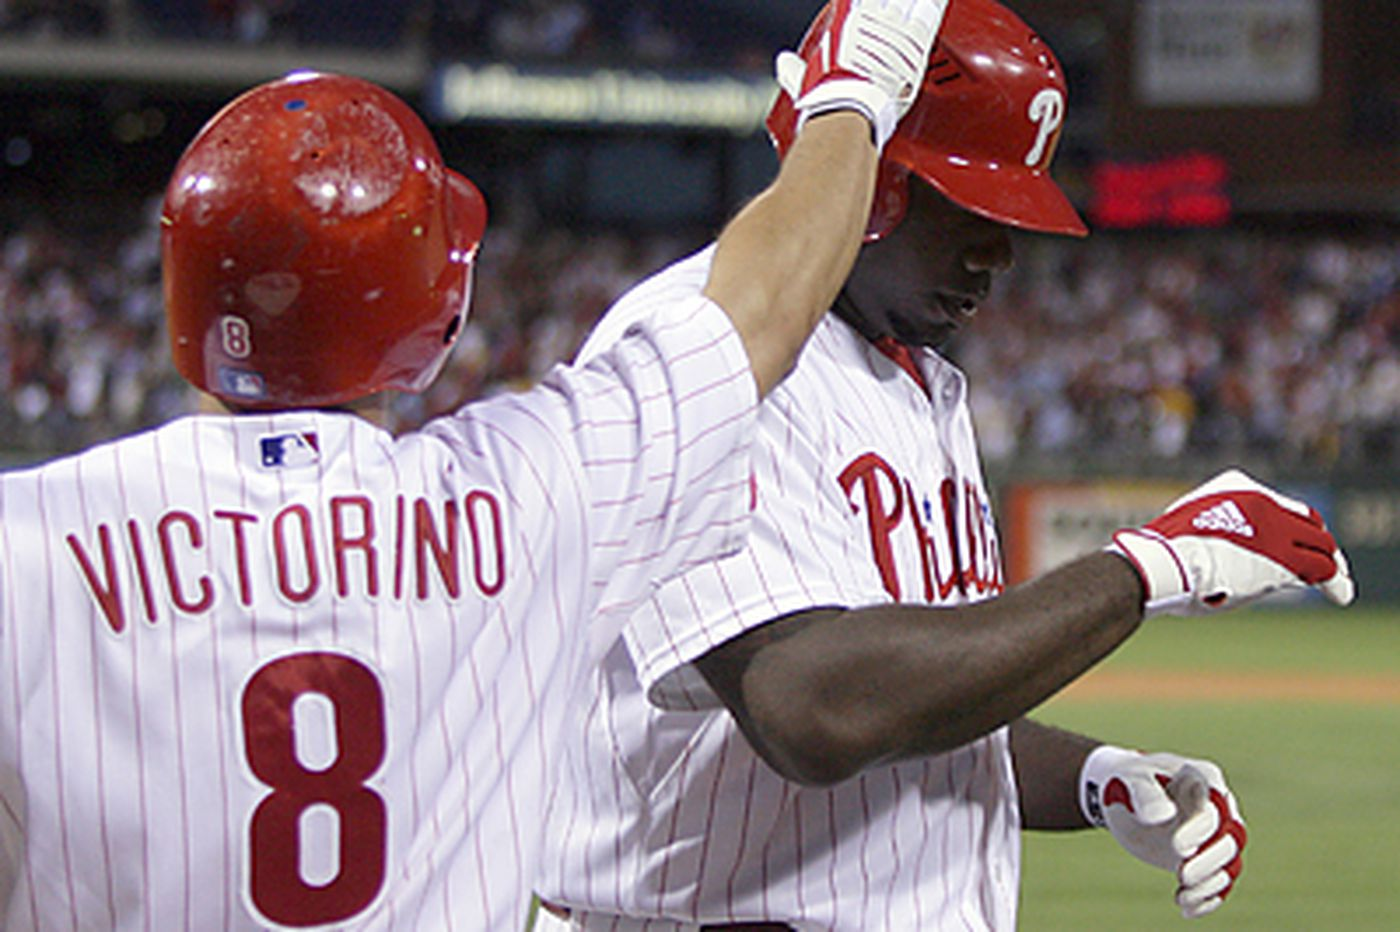 Bob Ford: Howard tries to lift Phils himself